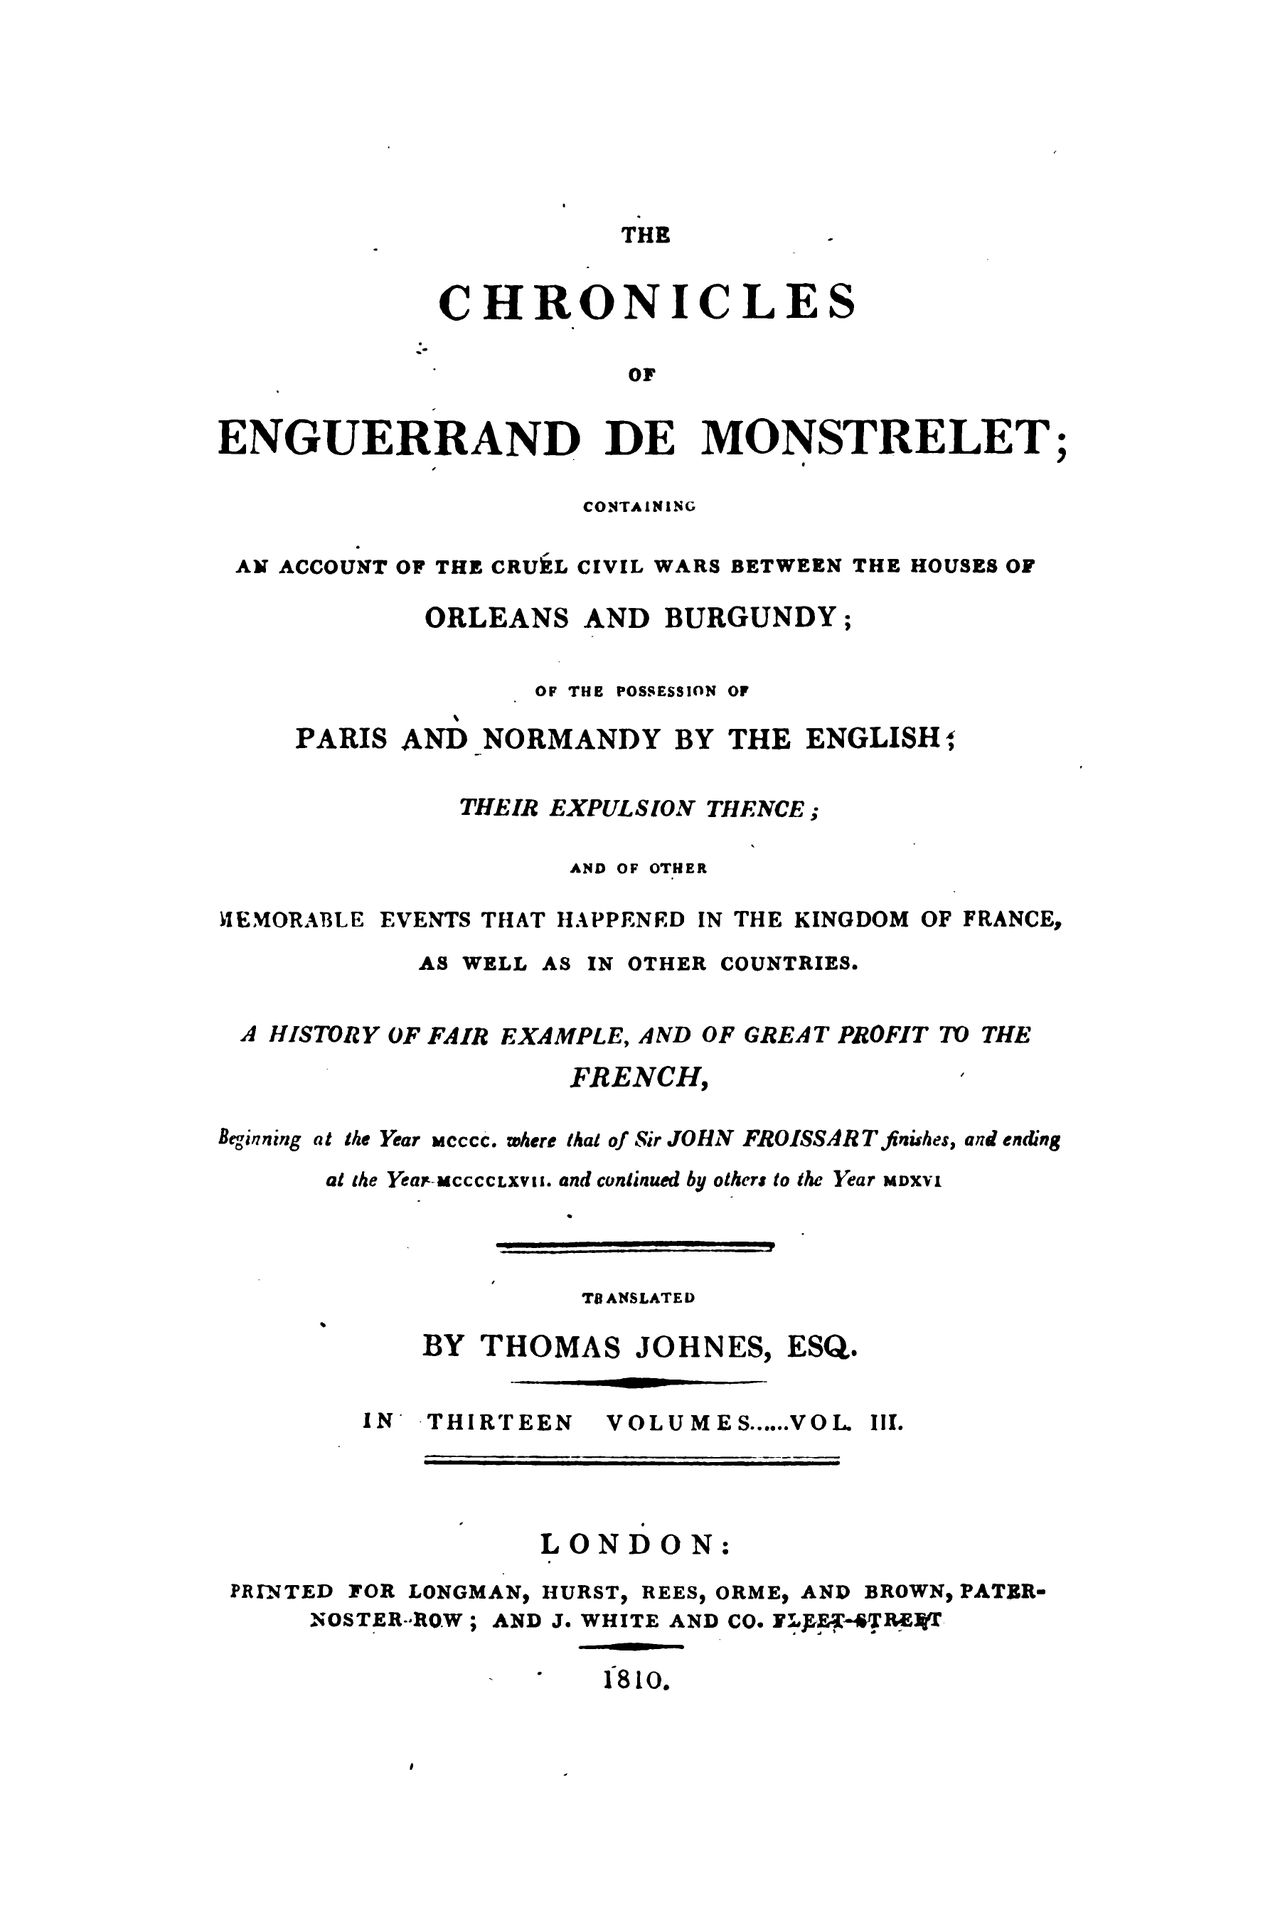 Enguerrand de Monstrelet chronicle vol.3